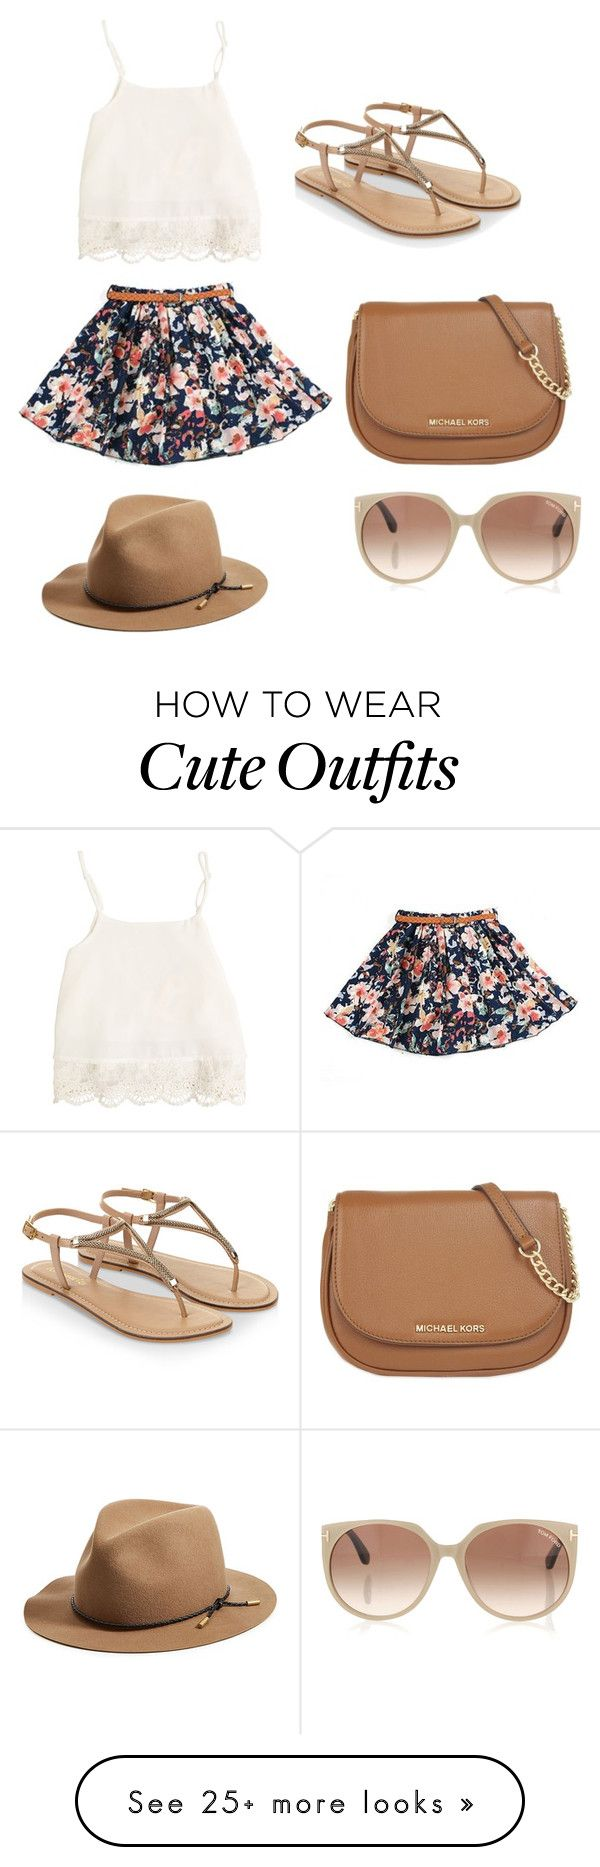 Verano oufits pinterest tom ford fashion women and ford